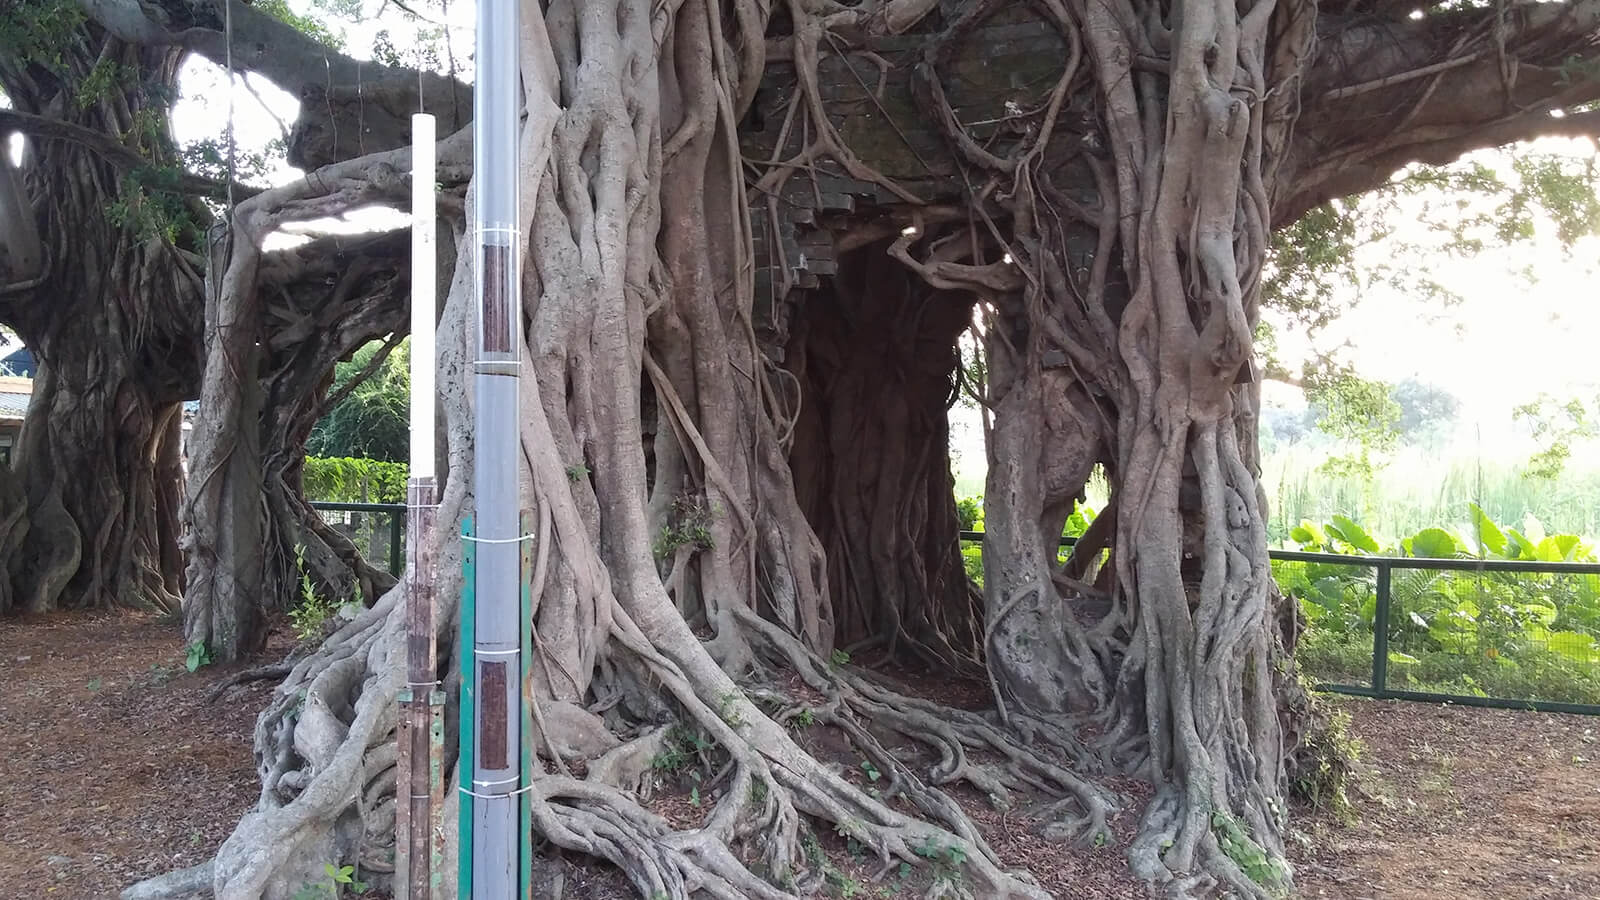 Kam Tin Tree House in Shui Tau, one of the interesting and off the beaten path Hong Kong activities for your travel to-do list